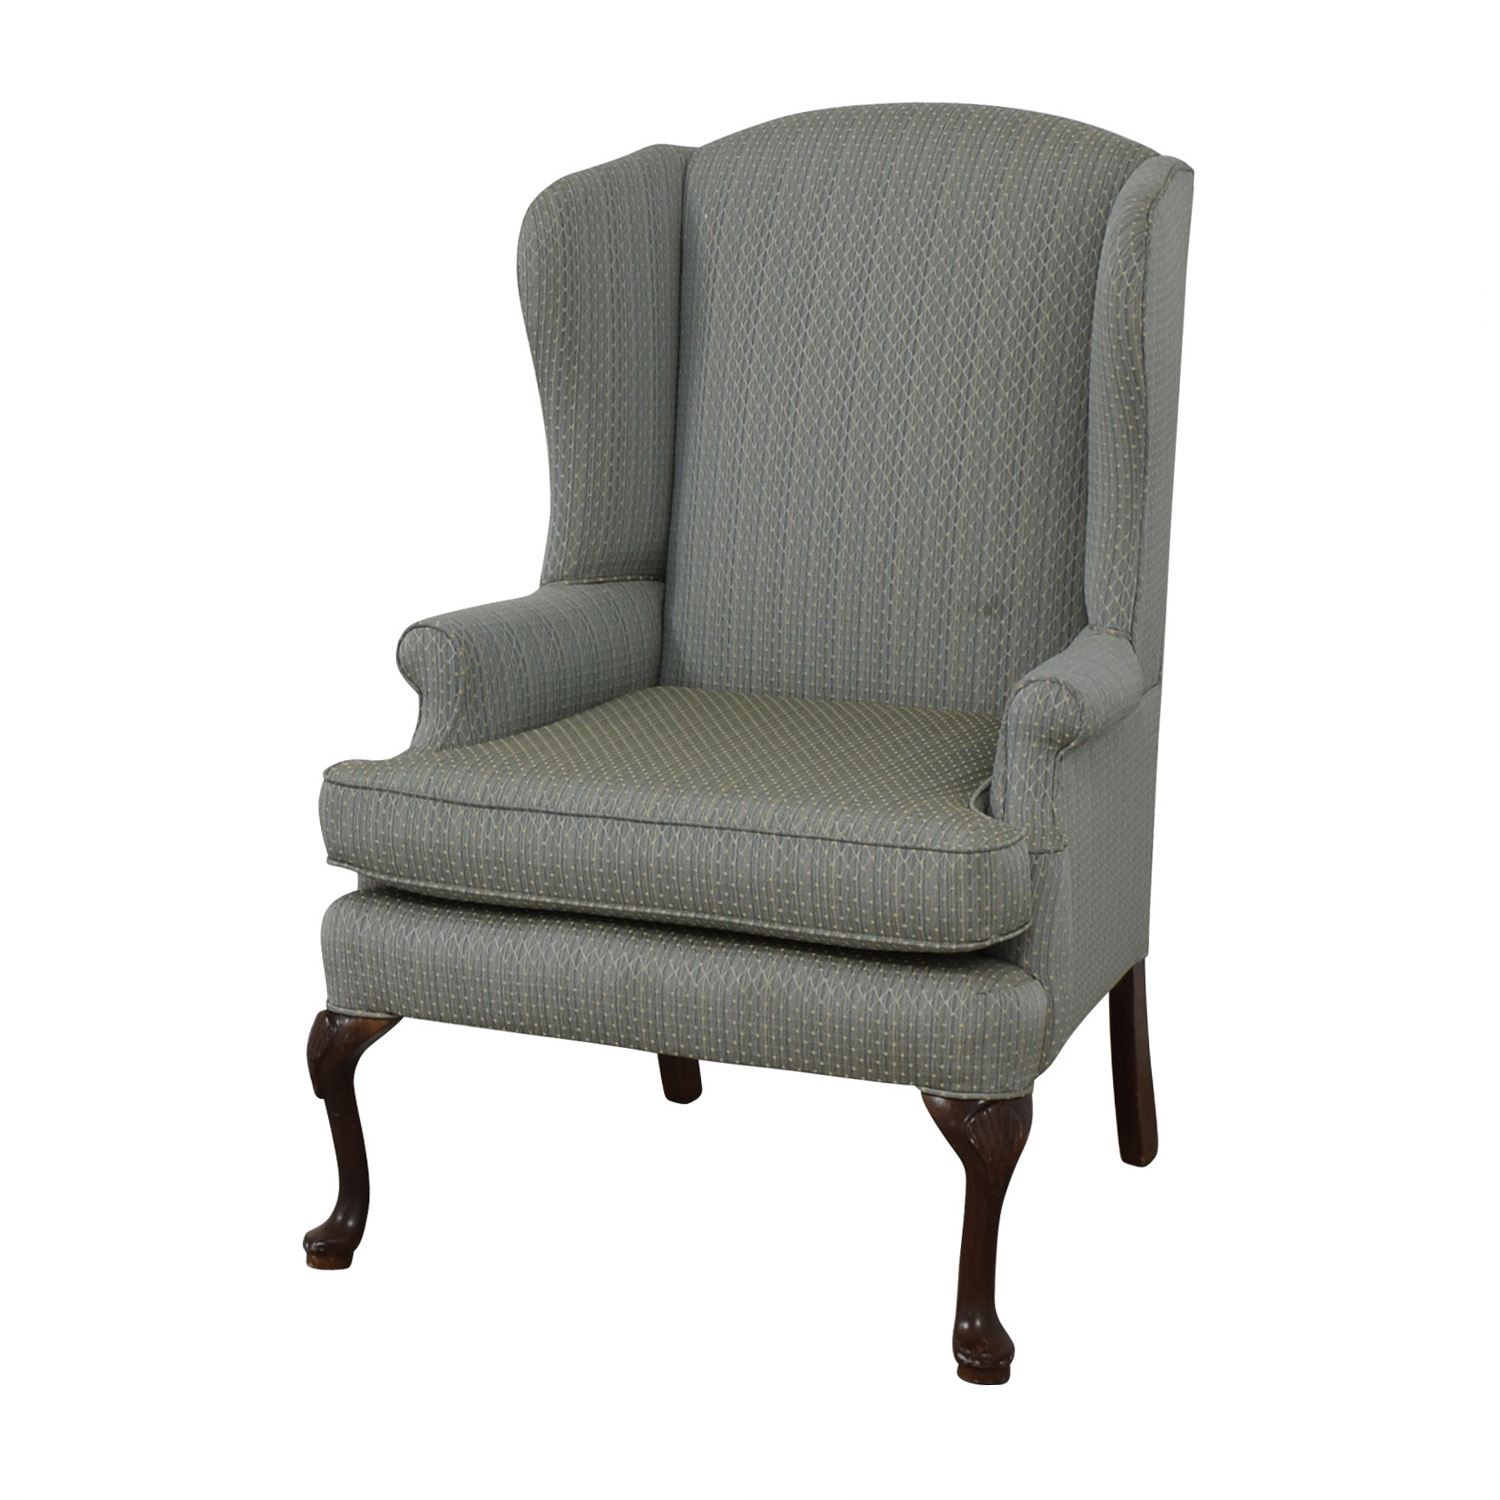 White Accent Chairs Used.Wingback Accent Chairs Qasync Com